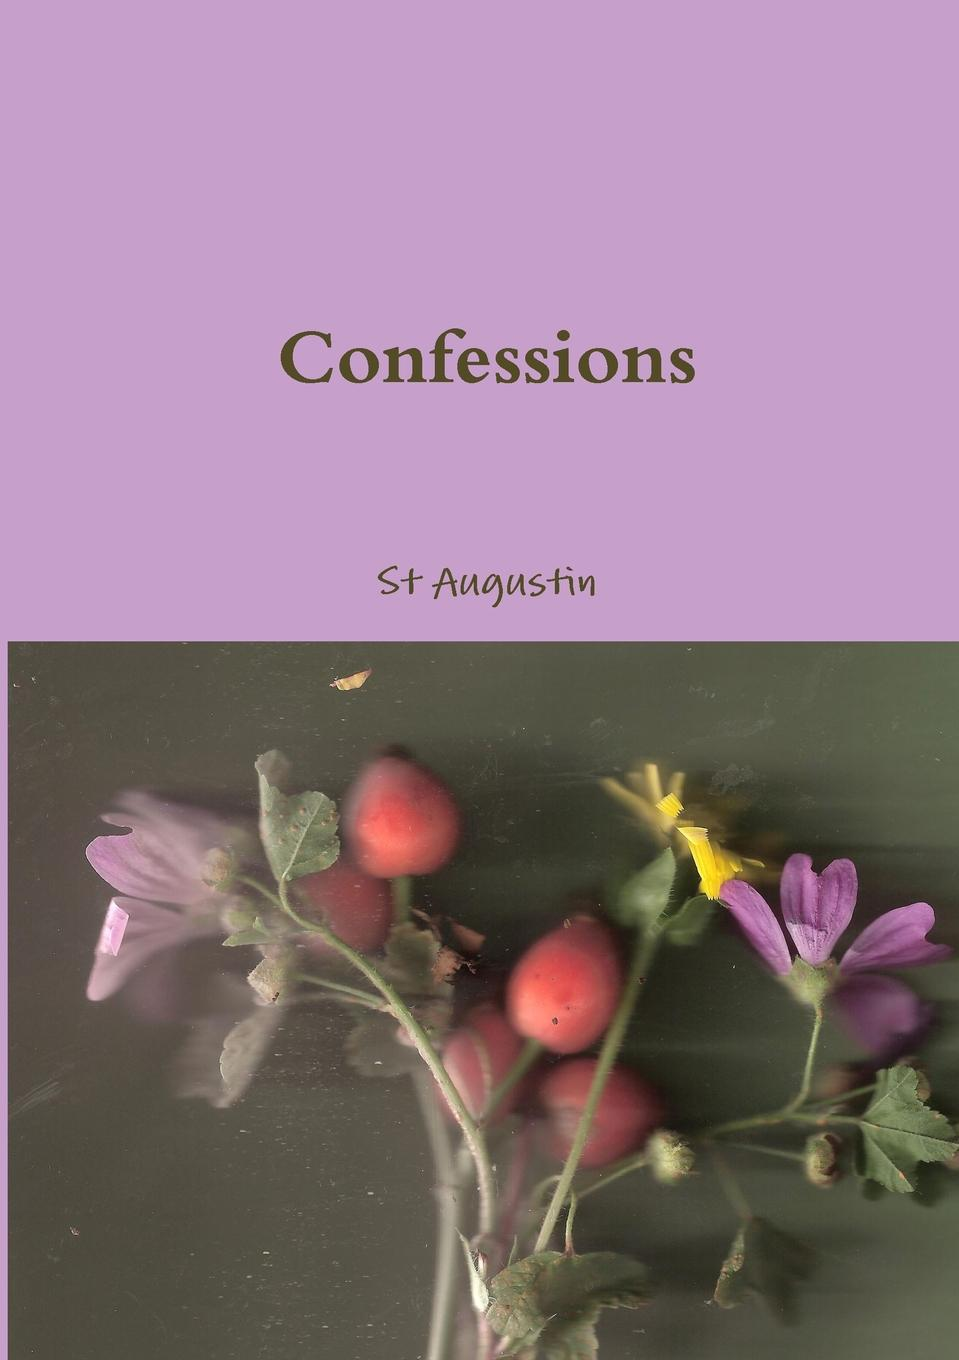 St Agustinr Confessions various confessions